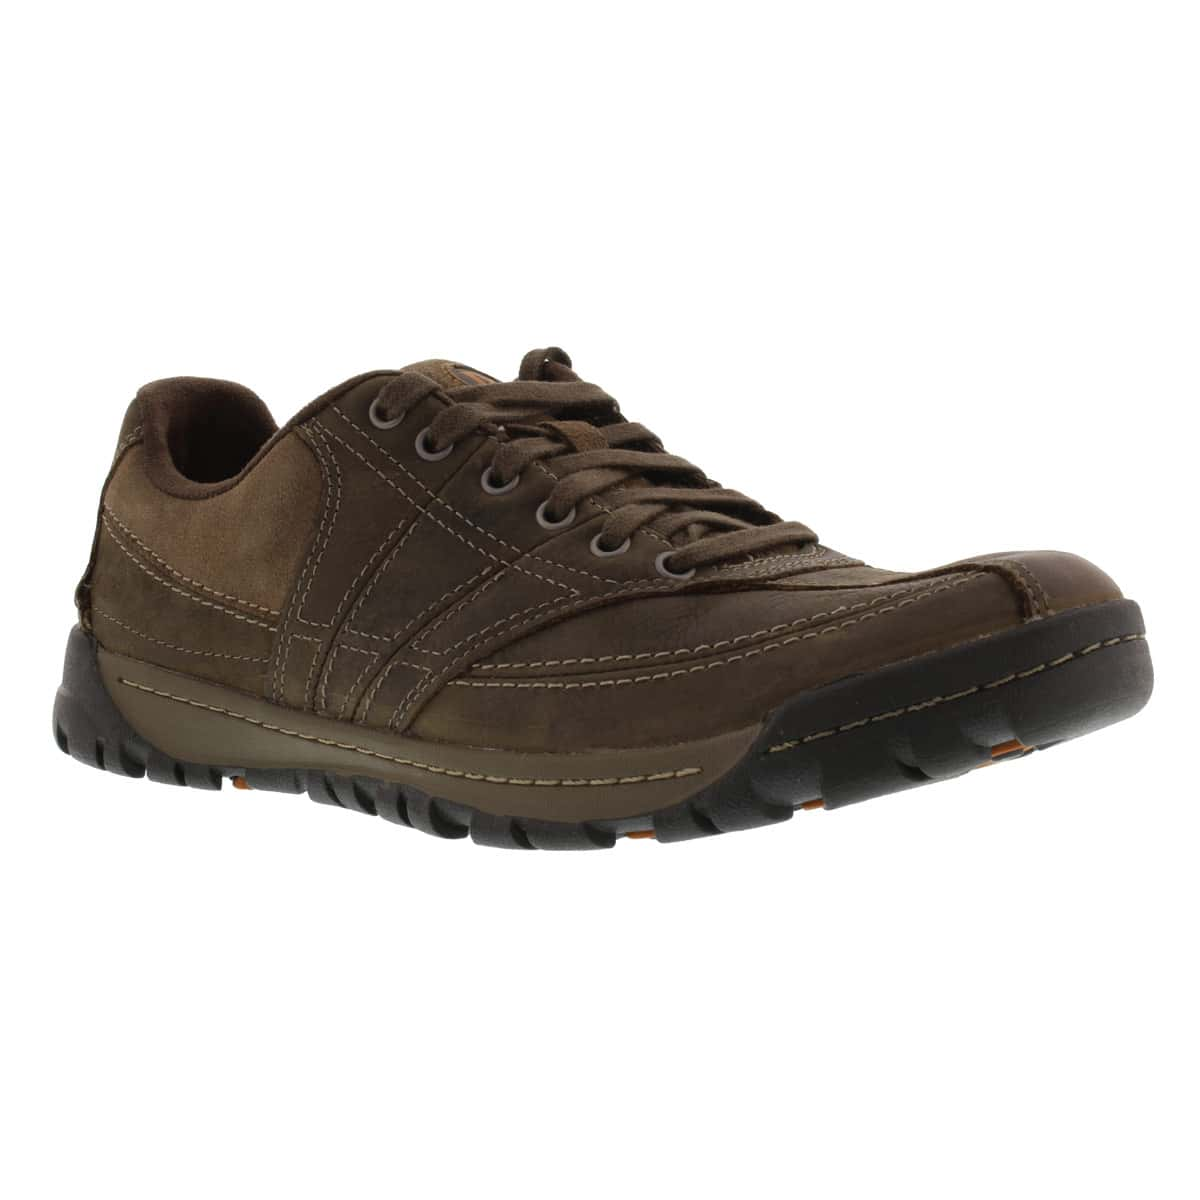 Mns Traveler Spin canteen lace up shoe